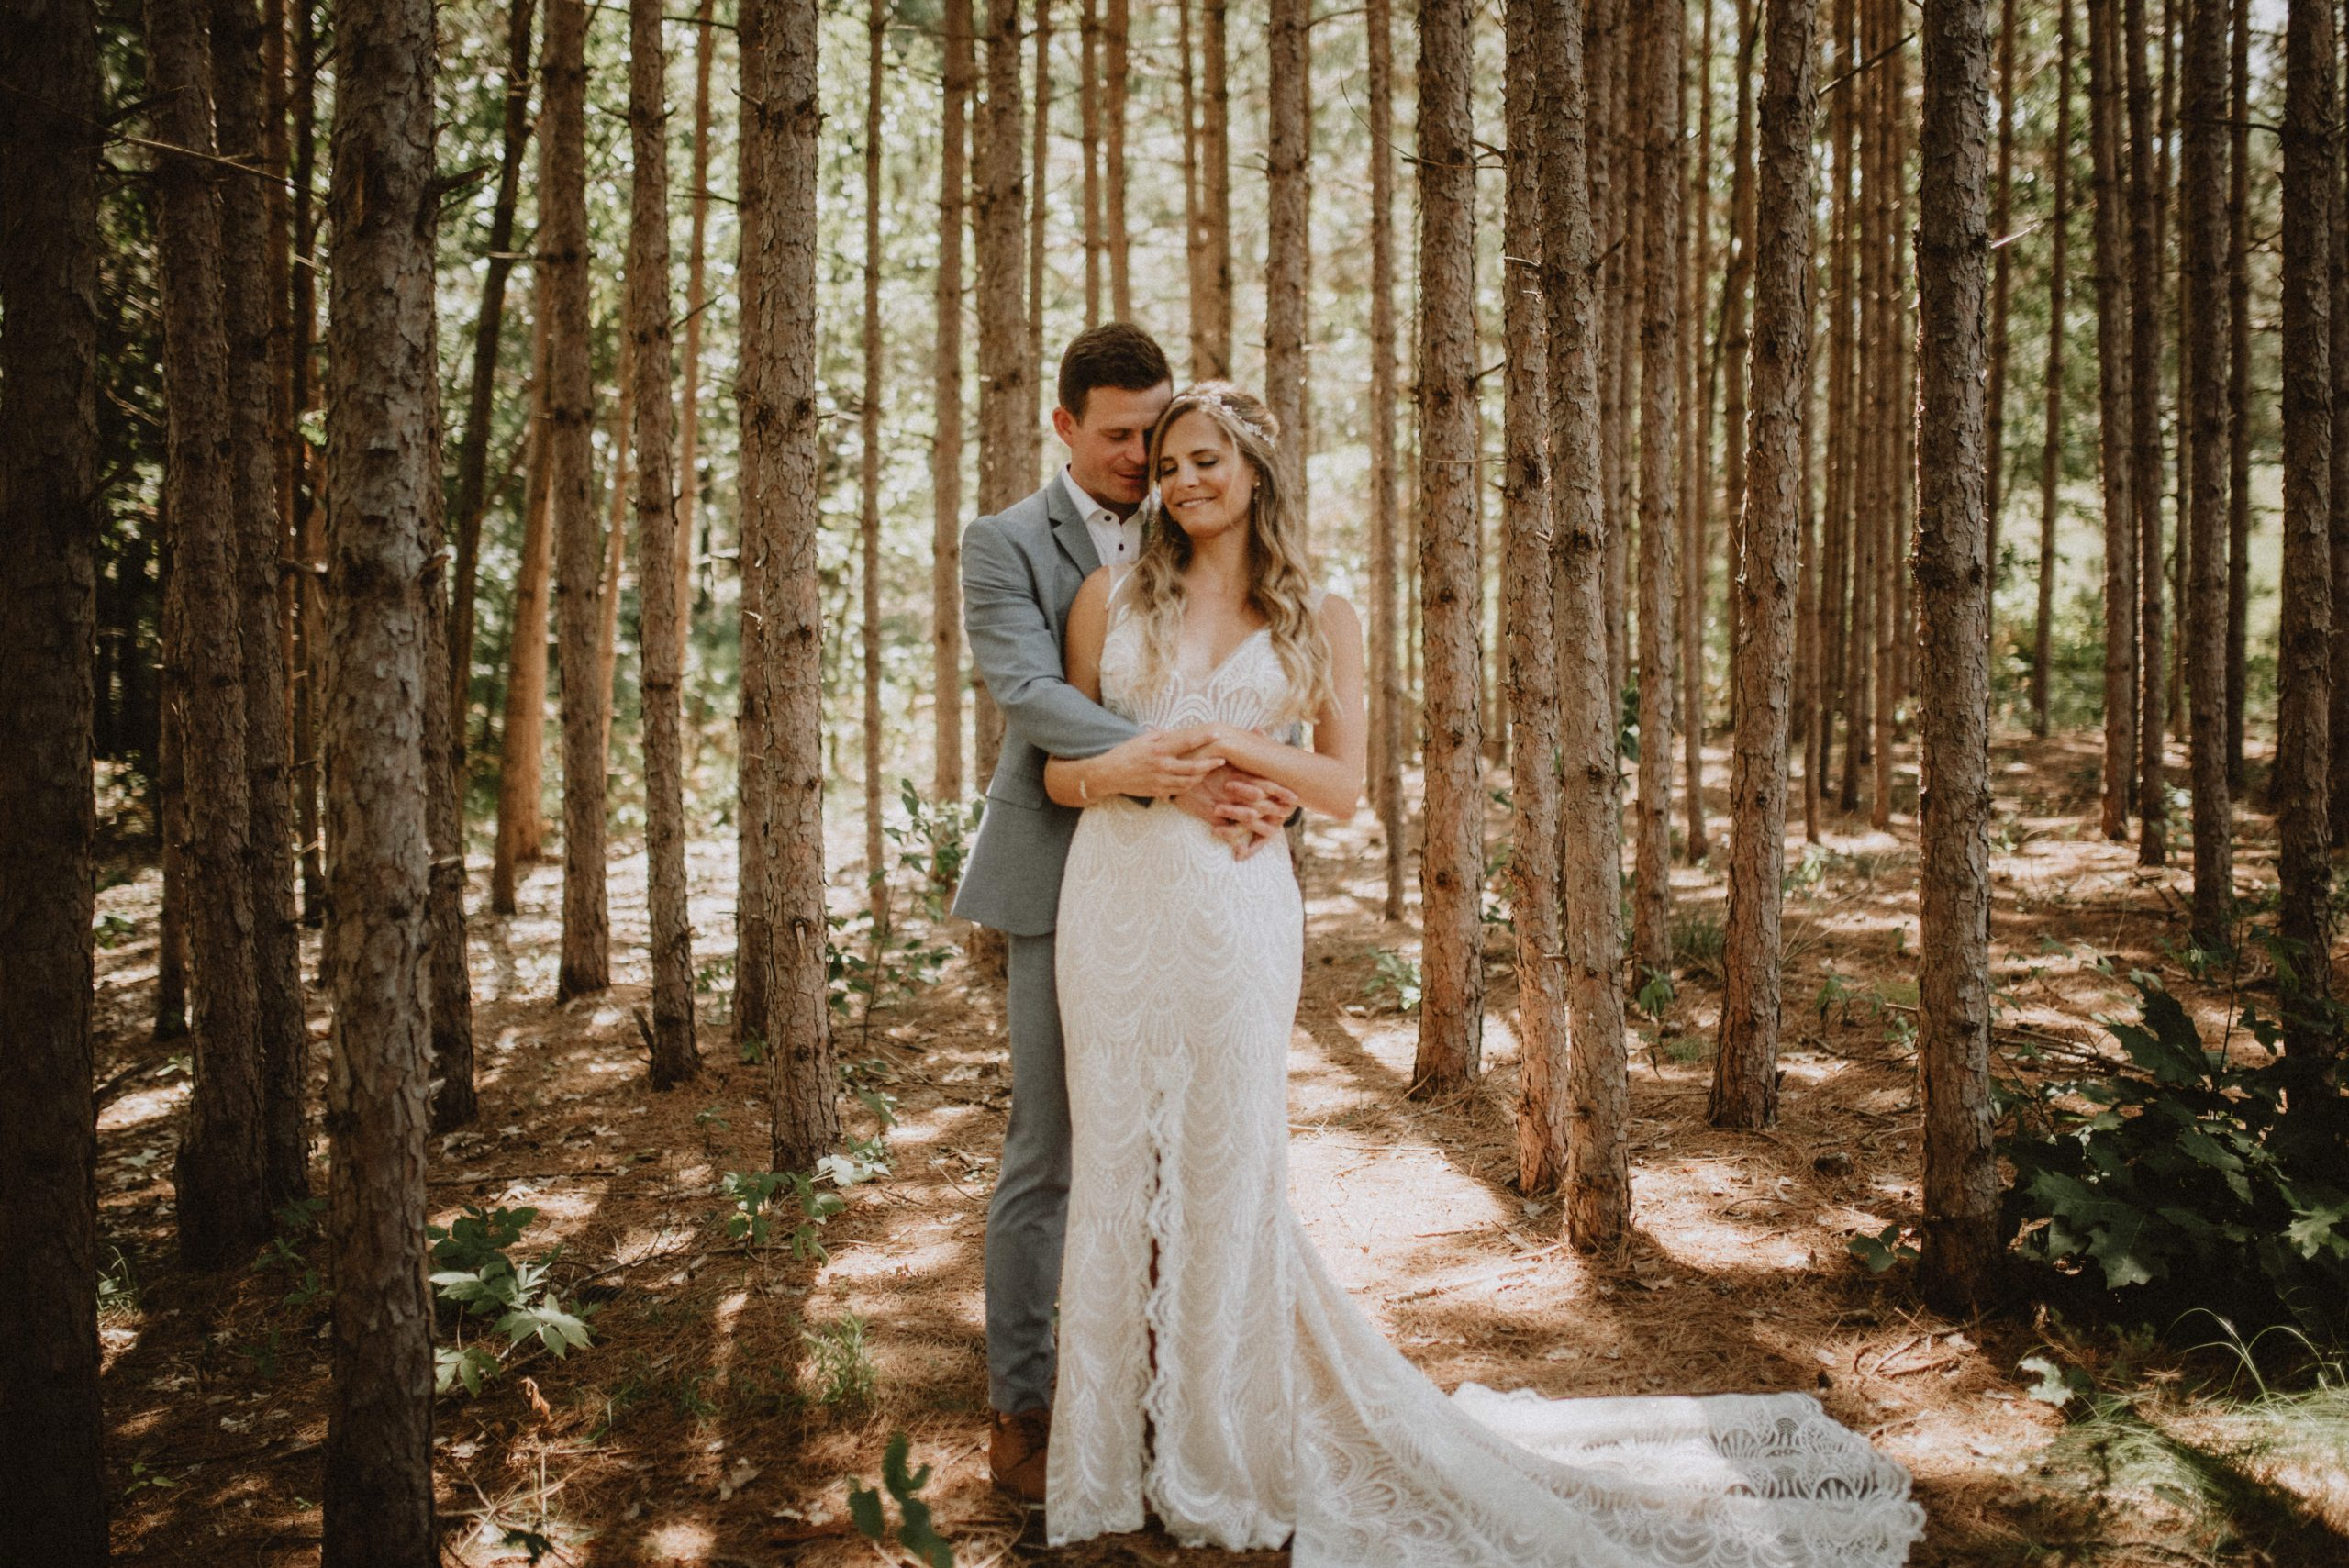 Groom holding bride from behind in tall pine forest